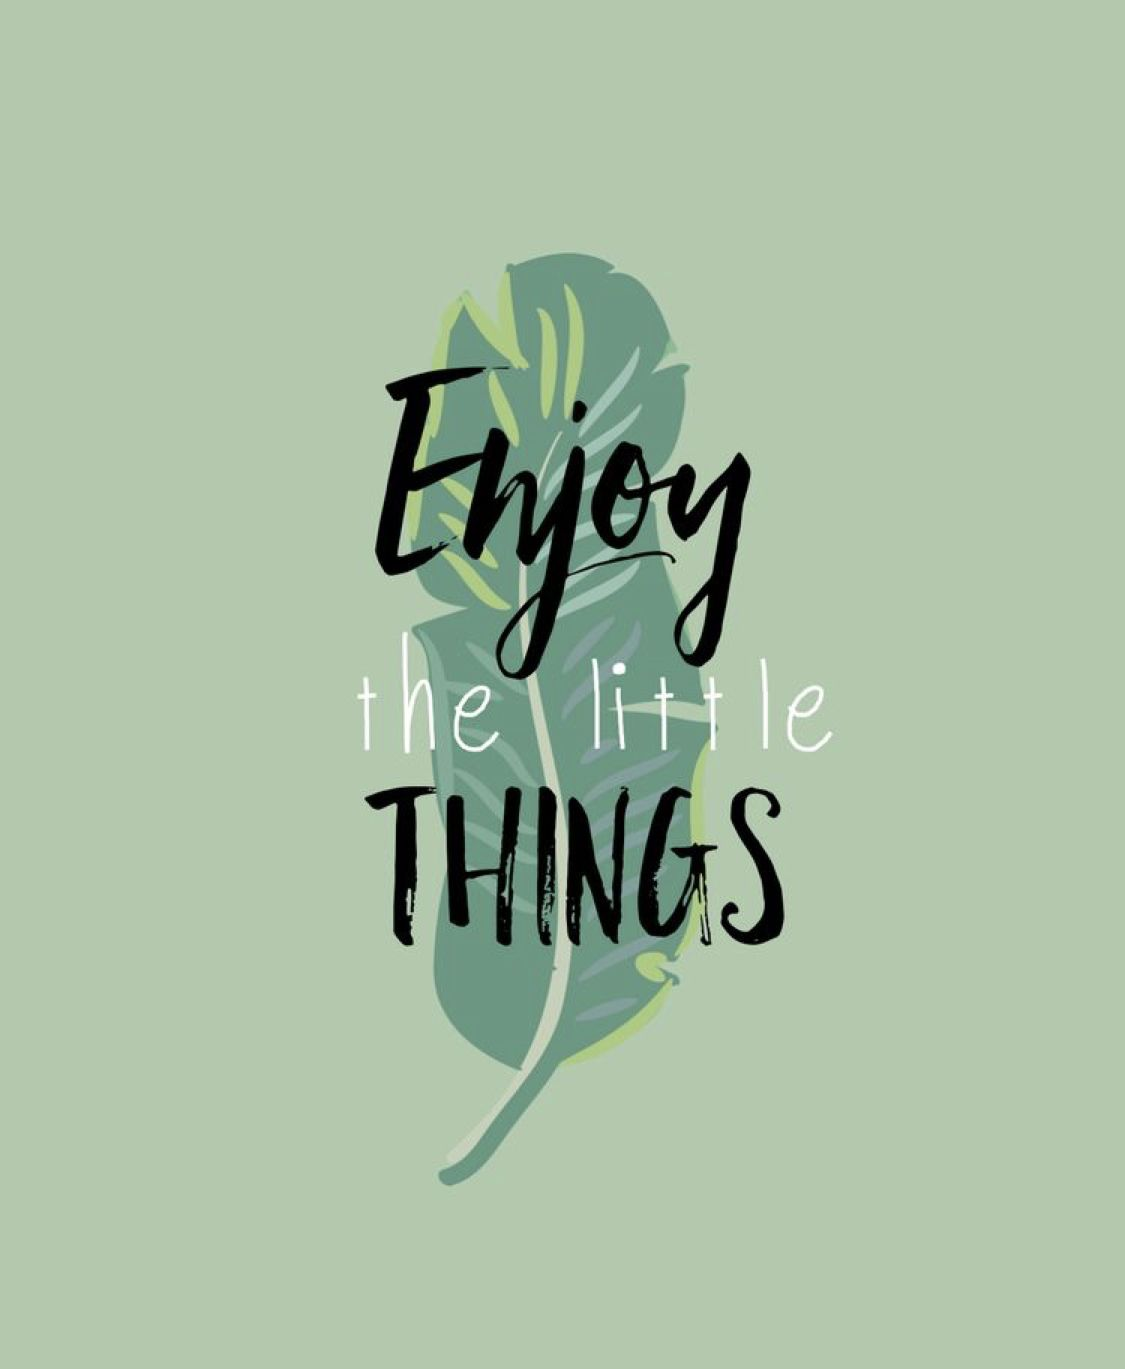 Enjoy The Little Things Quotes Inspirational Positive Funny Quotes Wallpaper Quotes